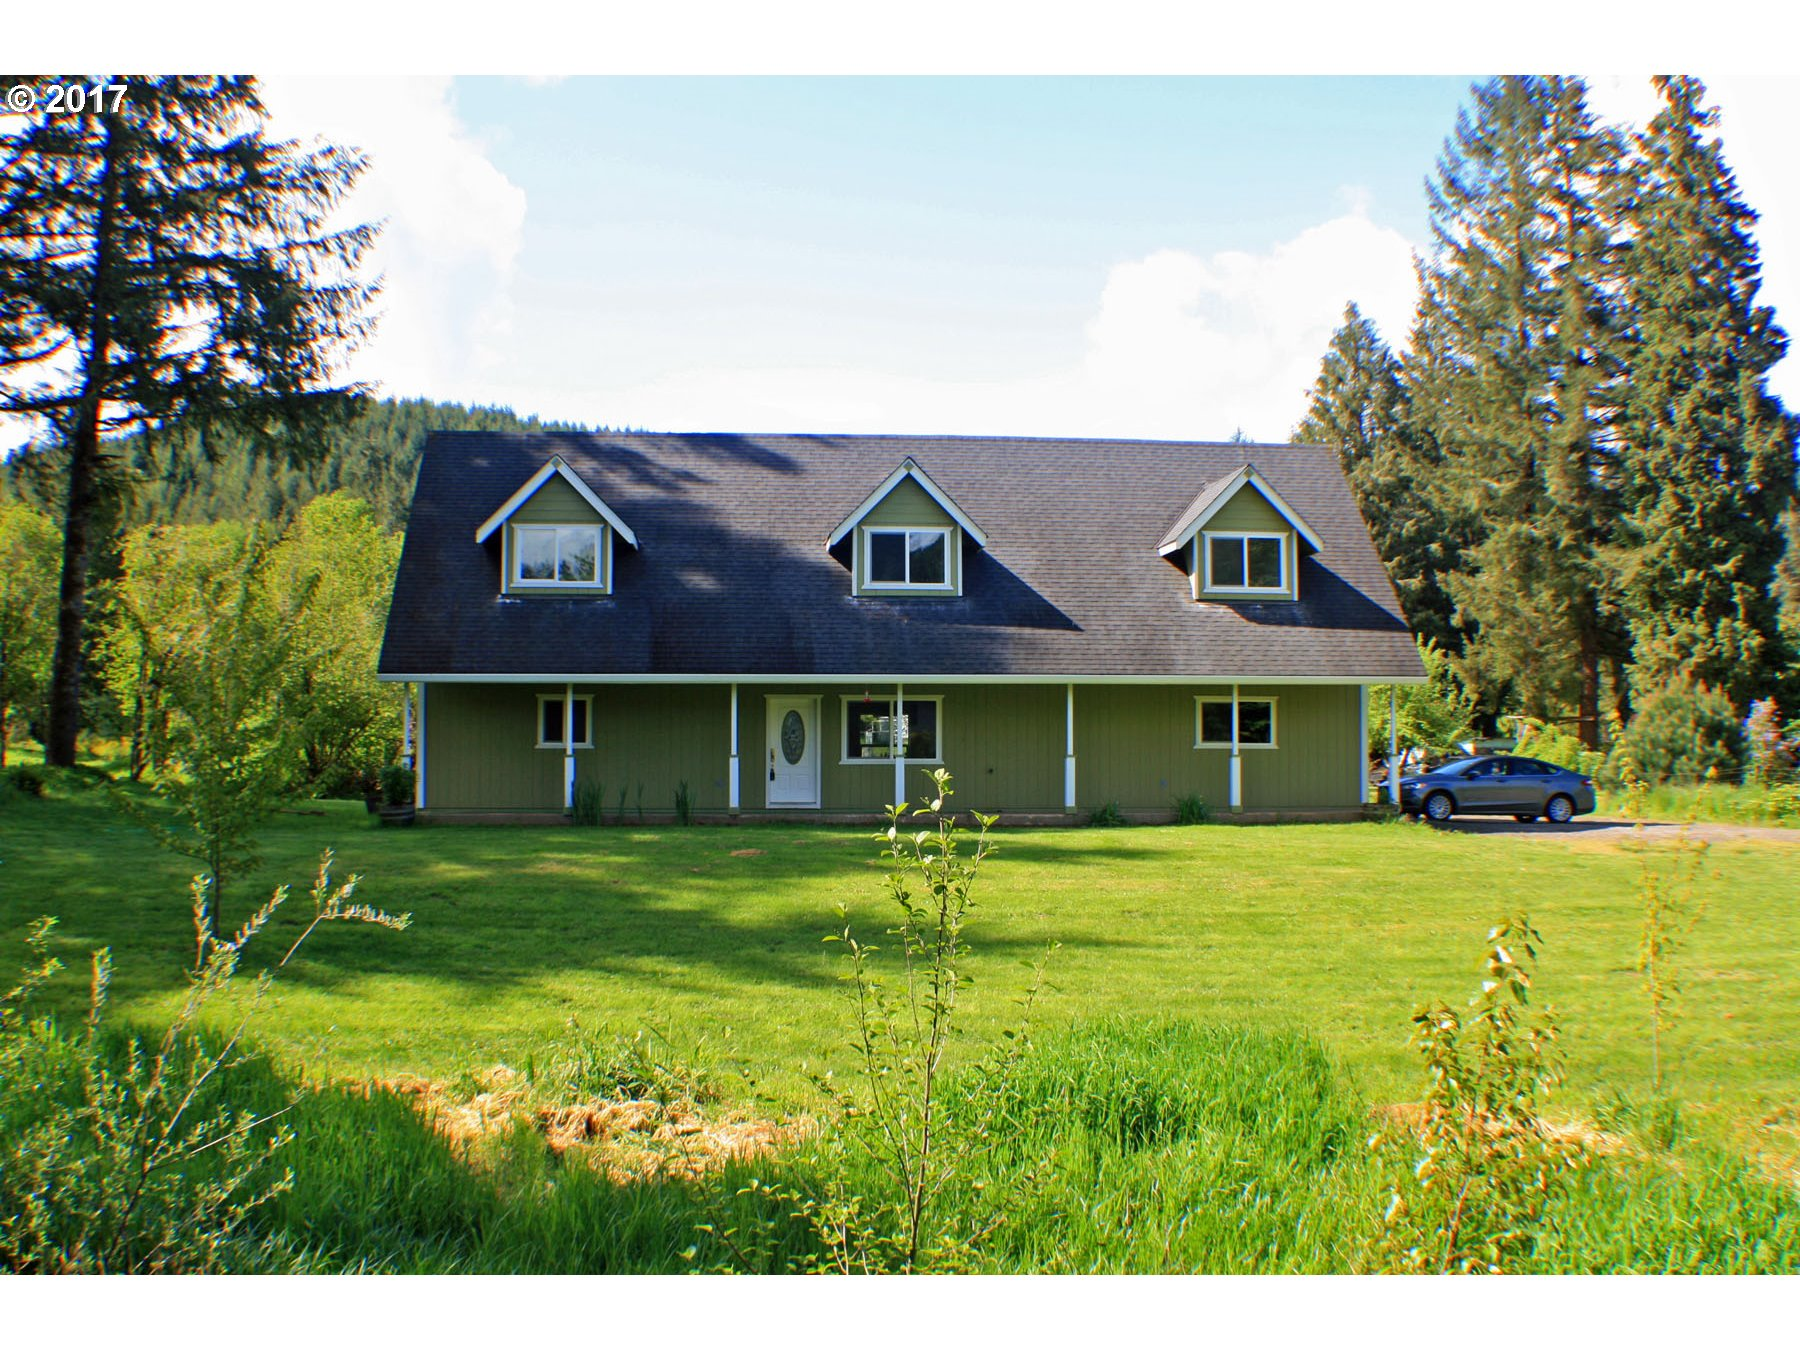 39752 WENDLING RD, Marcola, OR 97454